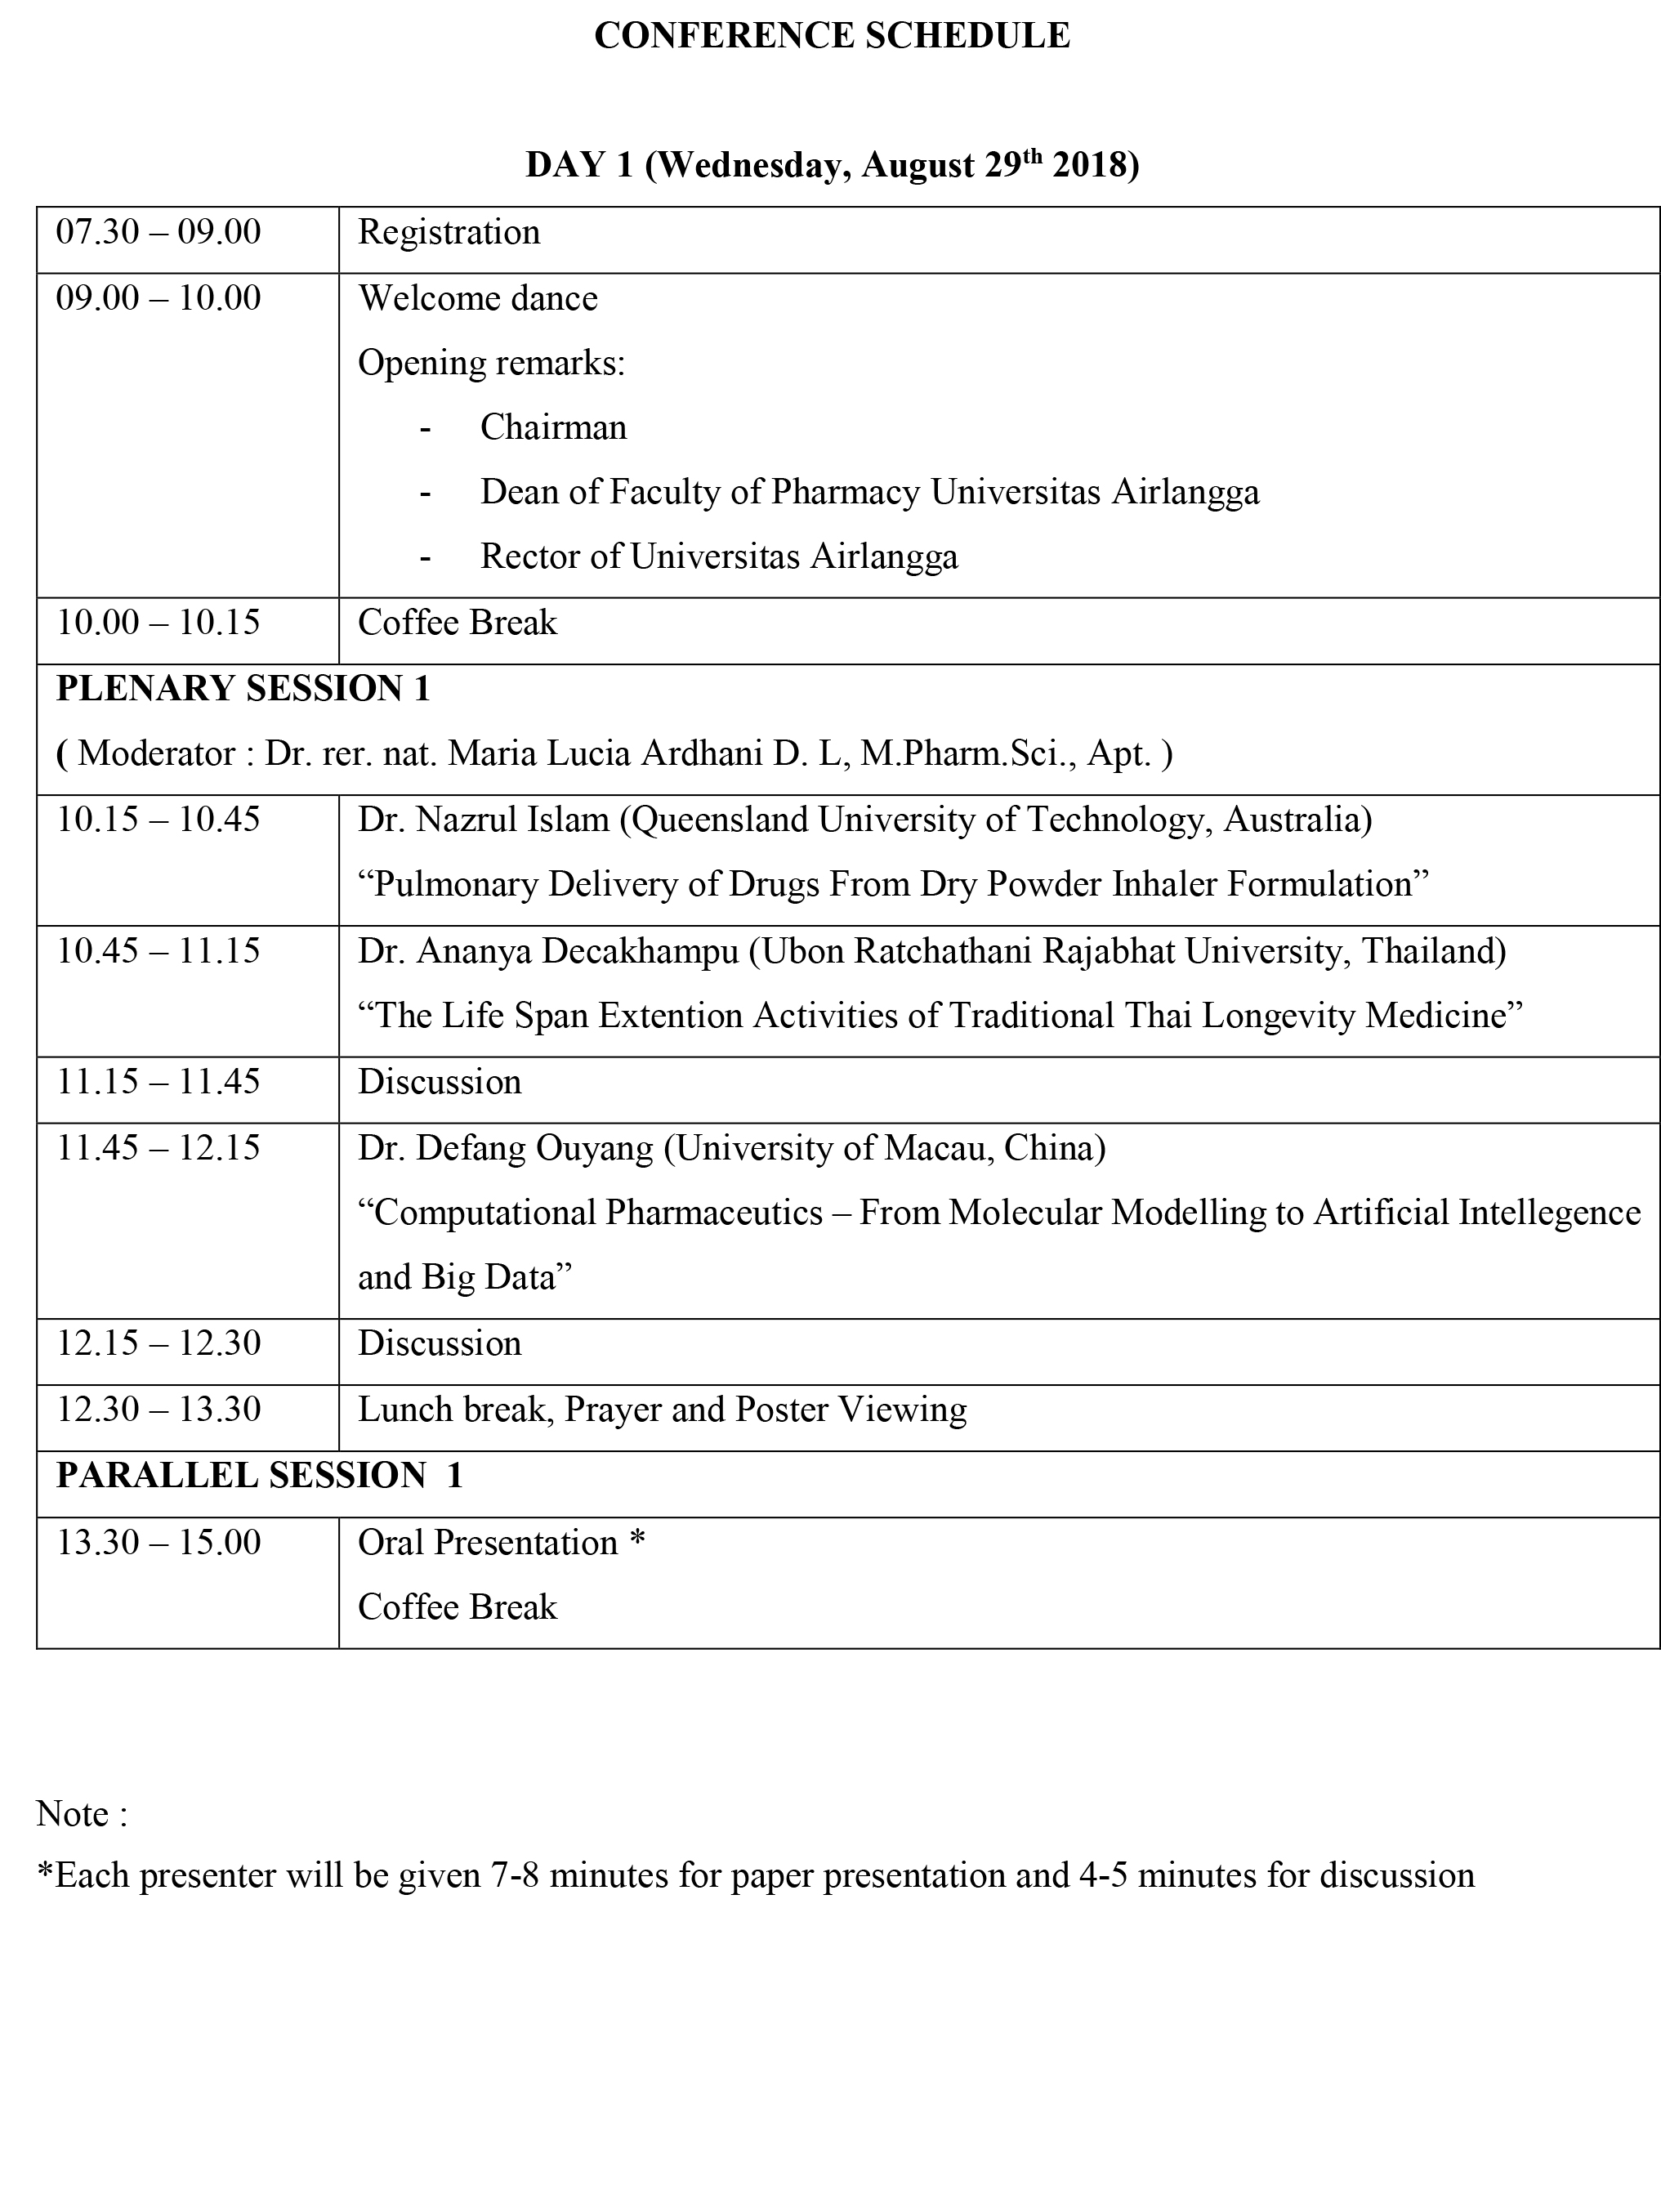 conference-program-fixed-1.jpg